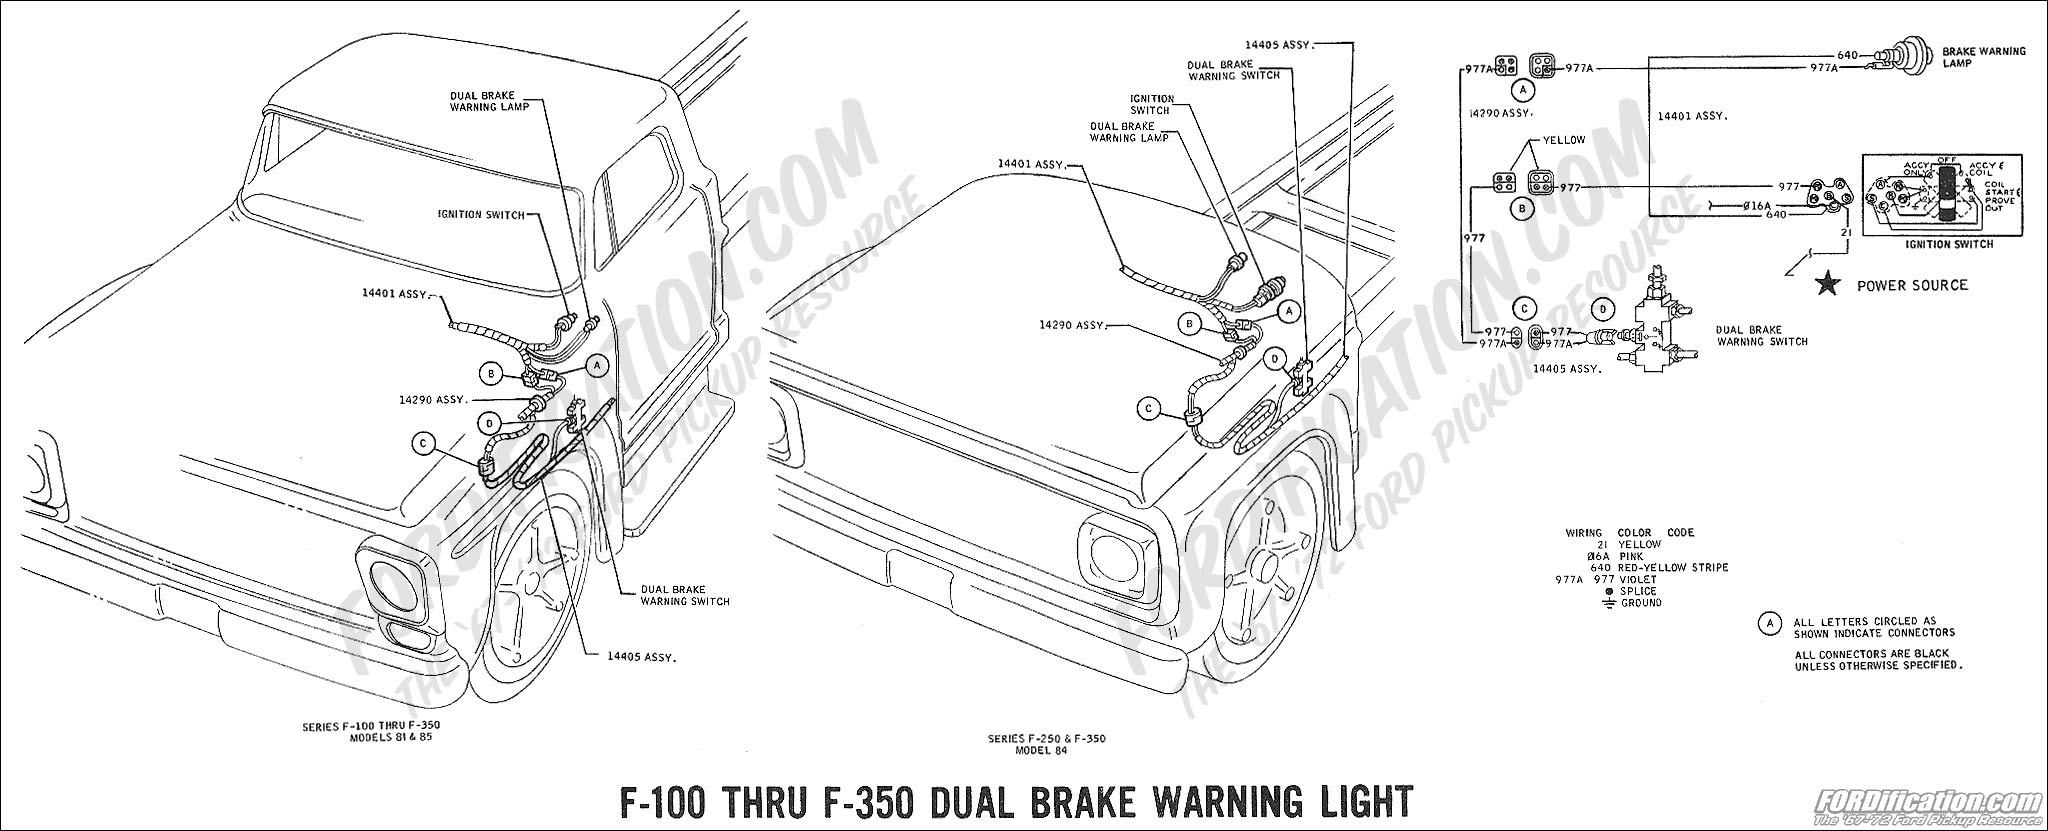 1969 Ford Headlight Switch Wiring Diagram Auto Electrical 1993 Explorer Truck Technical Drawings And Schematics Section H Rh Fordification Com 56 05